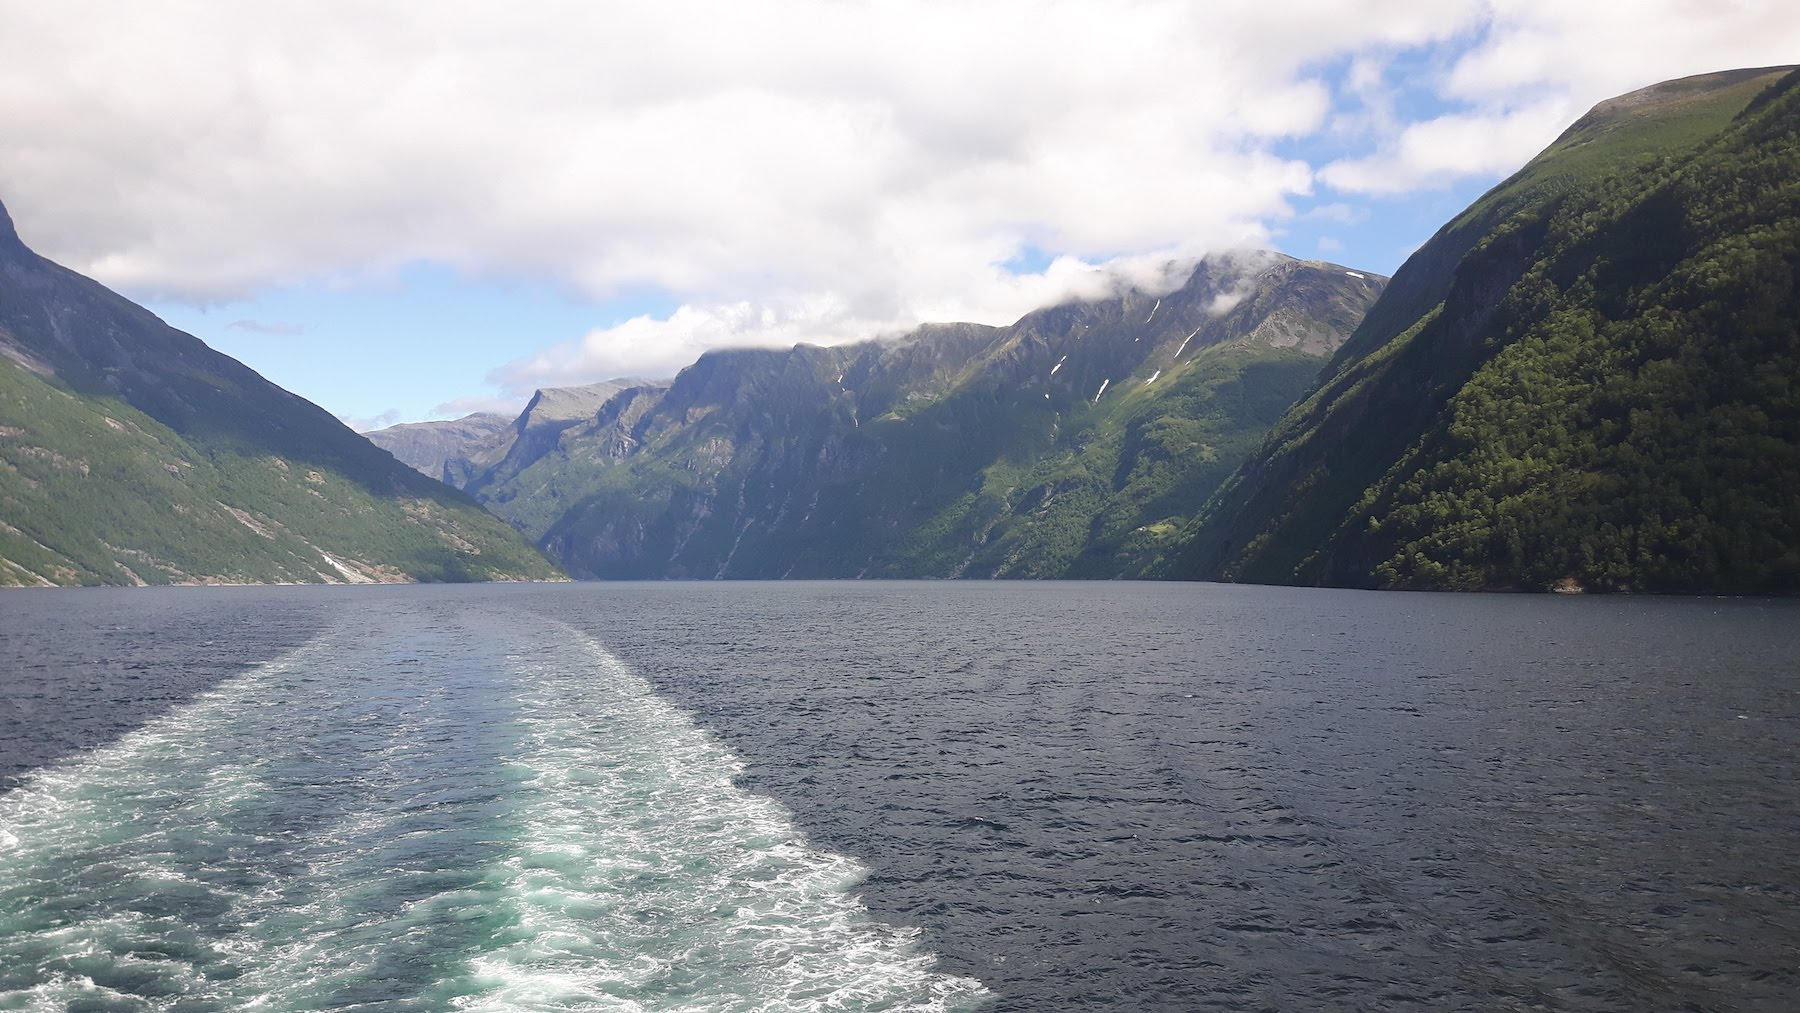 From Actor Geirangerfjord Norway